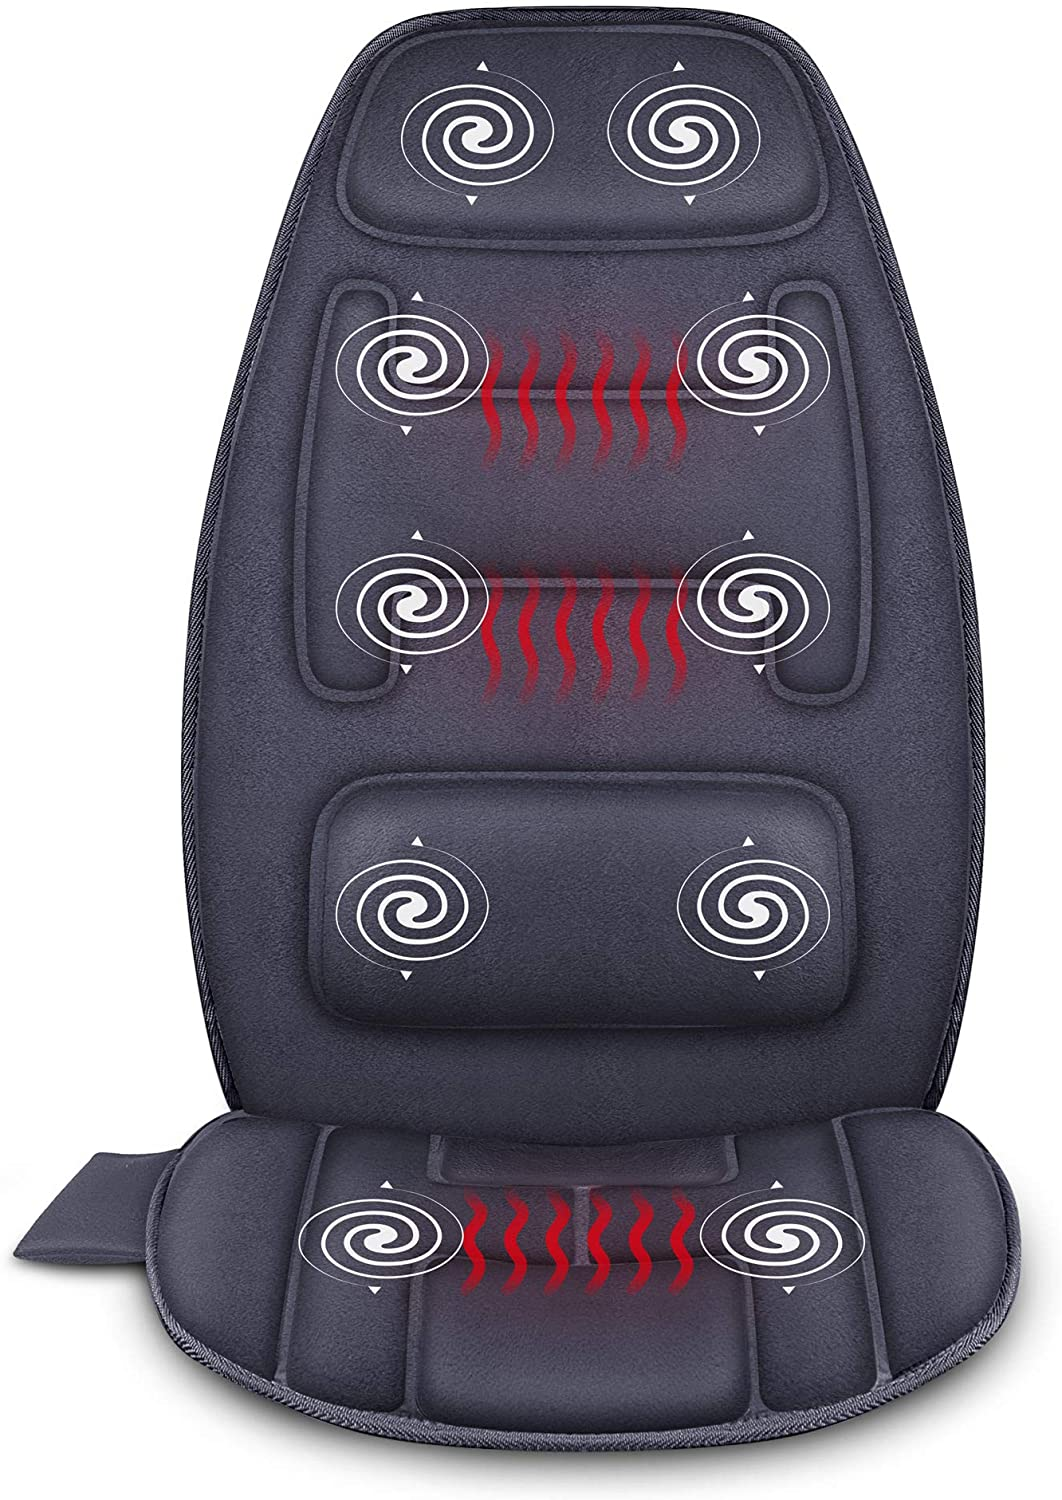 Snailax Massage Seat Cushion with Heat – Extra Memory Foam Support Pad in Neck and Lumbar,10 Vibration Massage Motors, 3 Heating Pad, Back Massager for Back Pain Relief, Massage Chair Pad for Car